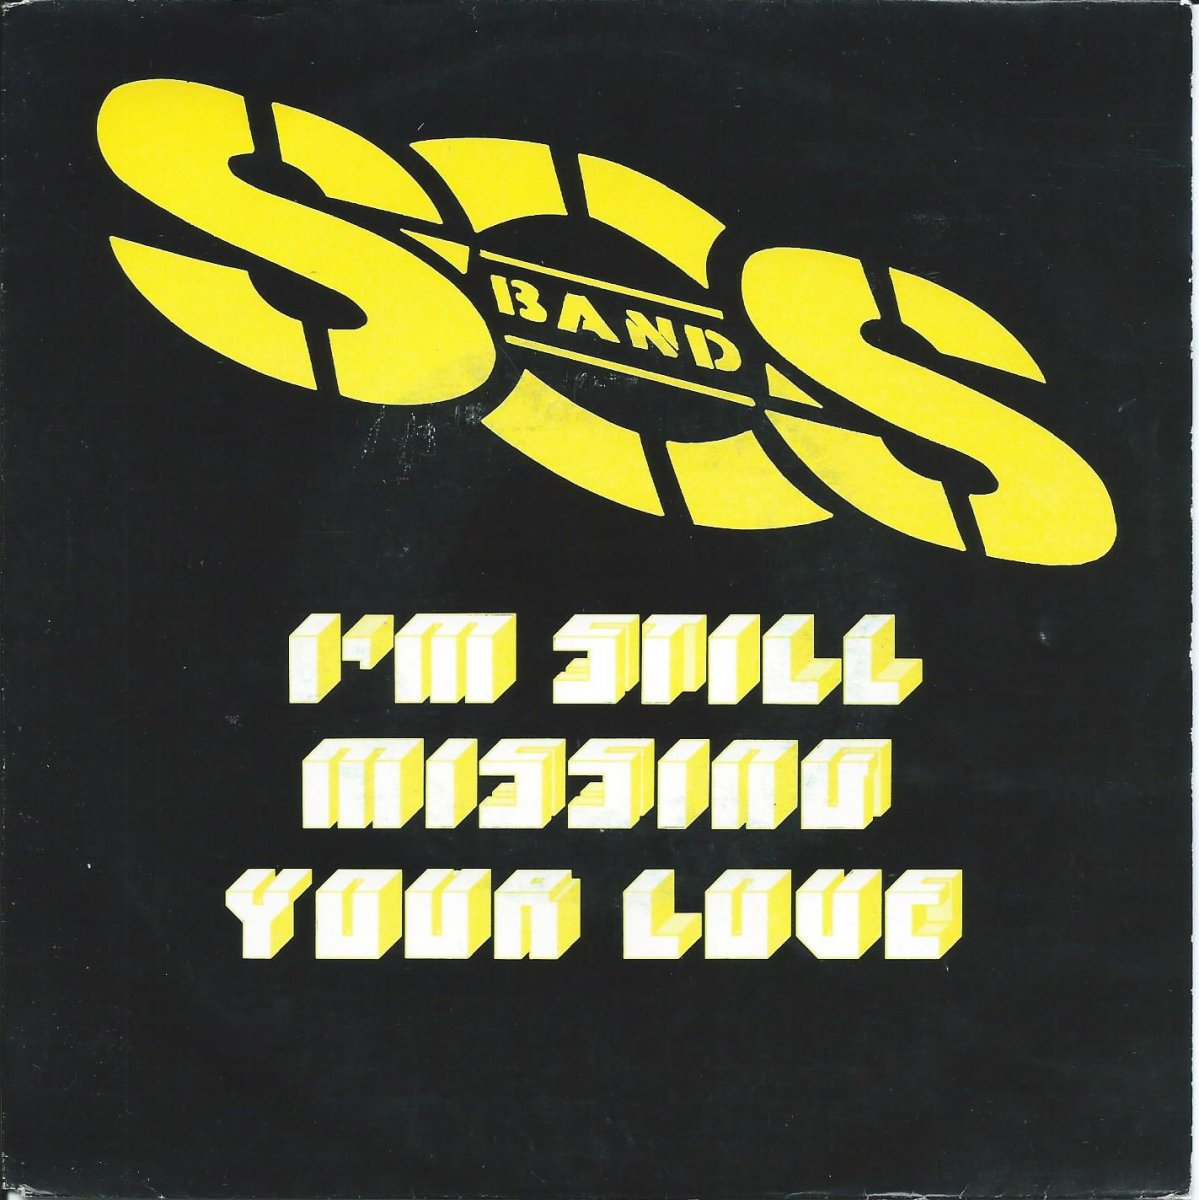 S.O.S. BAND / I'M STILL MISSING YOUR LOVE (7